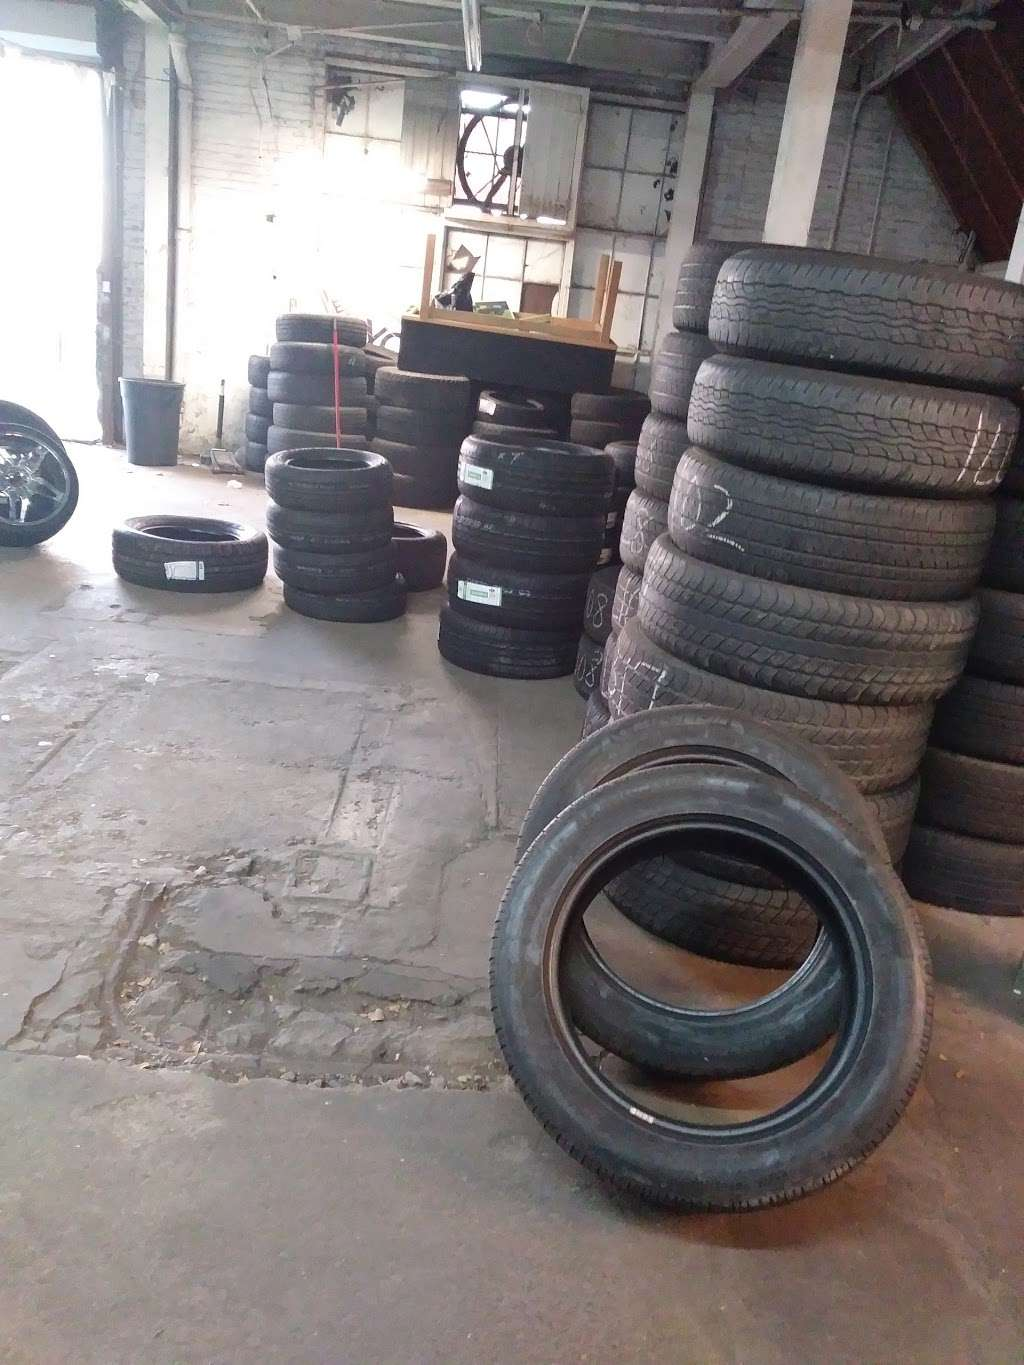 Tire Giants - car repair    Photo 9 of 10   Address: 8301 Torresdale Ave, Philadelphia, PA 19136, USA   Phone: (215) 941-4423